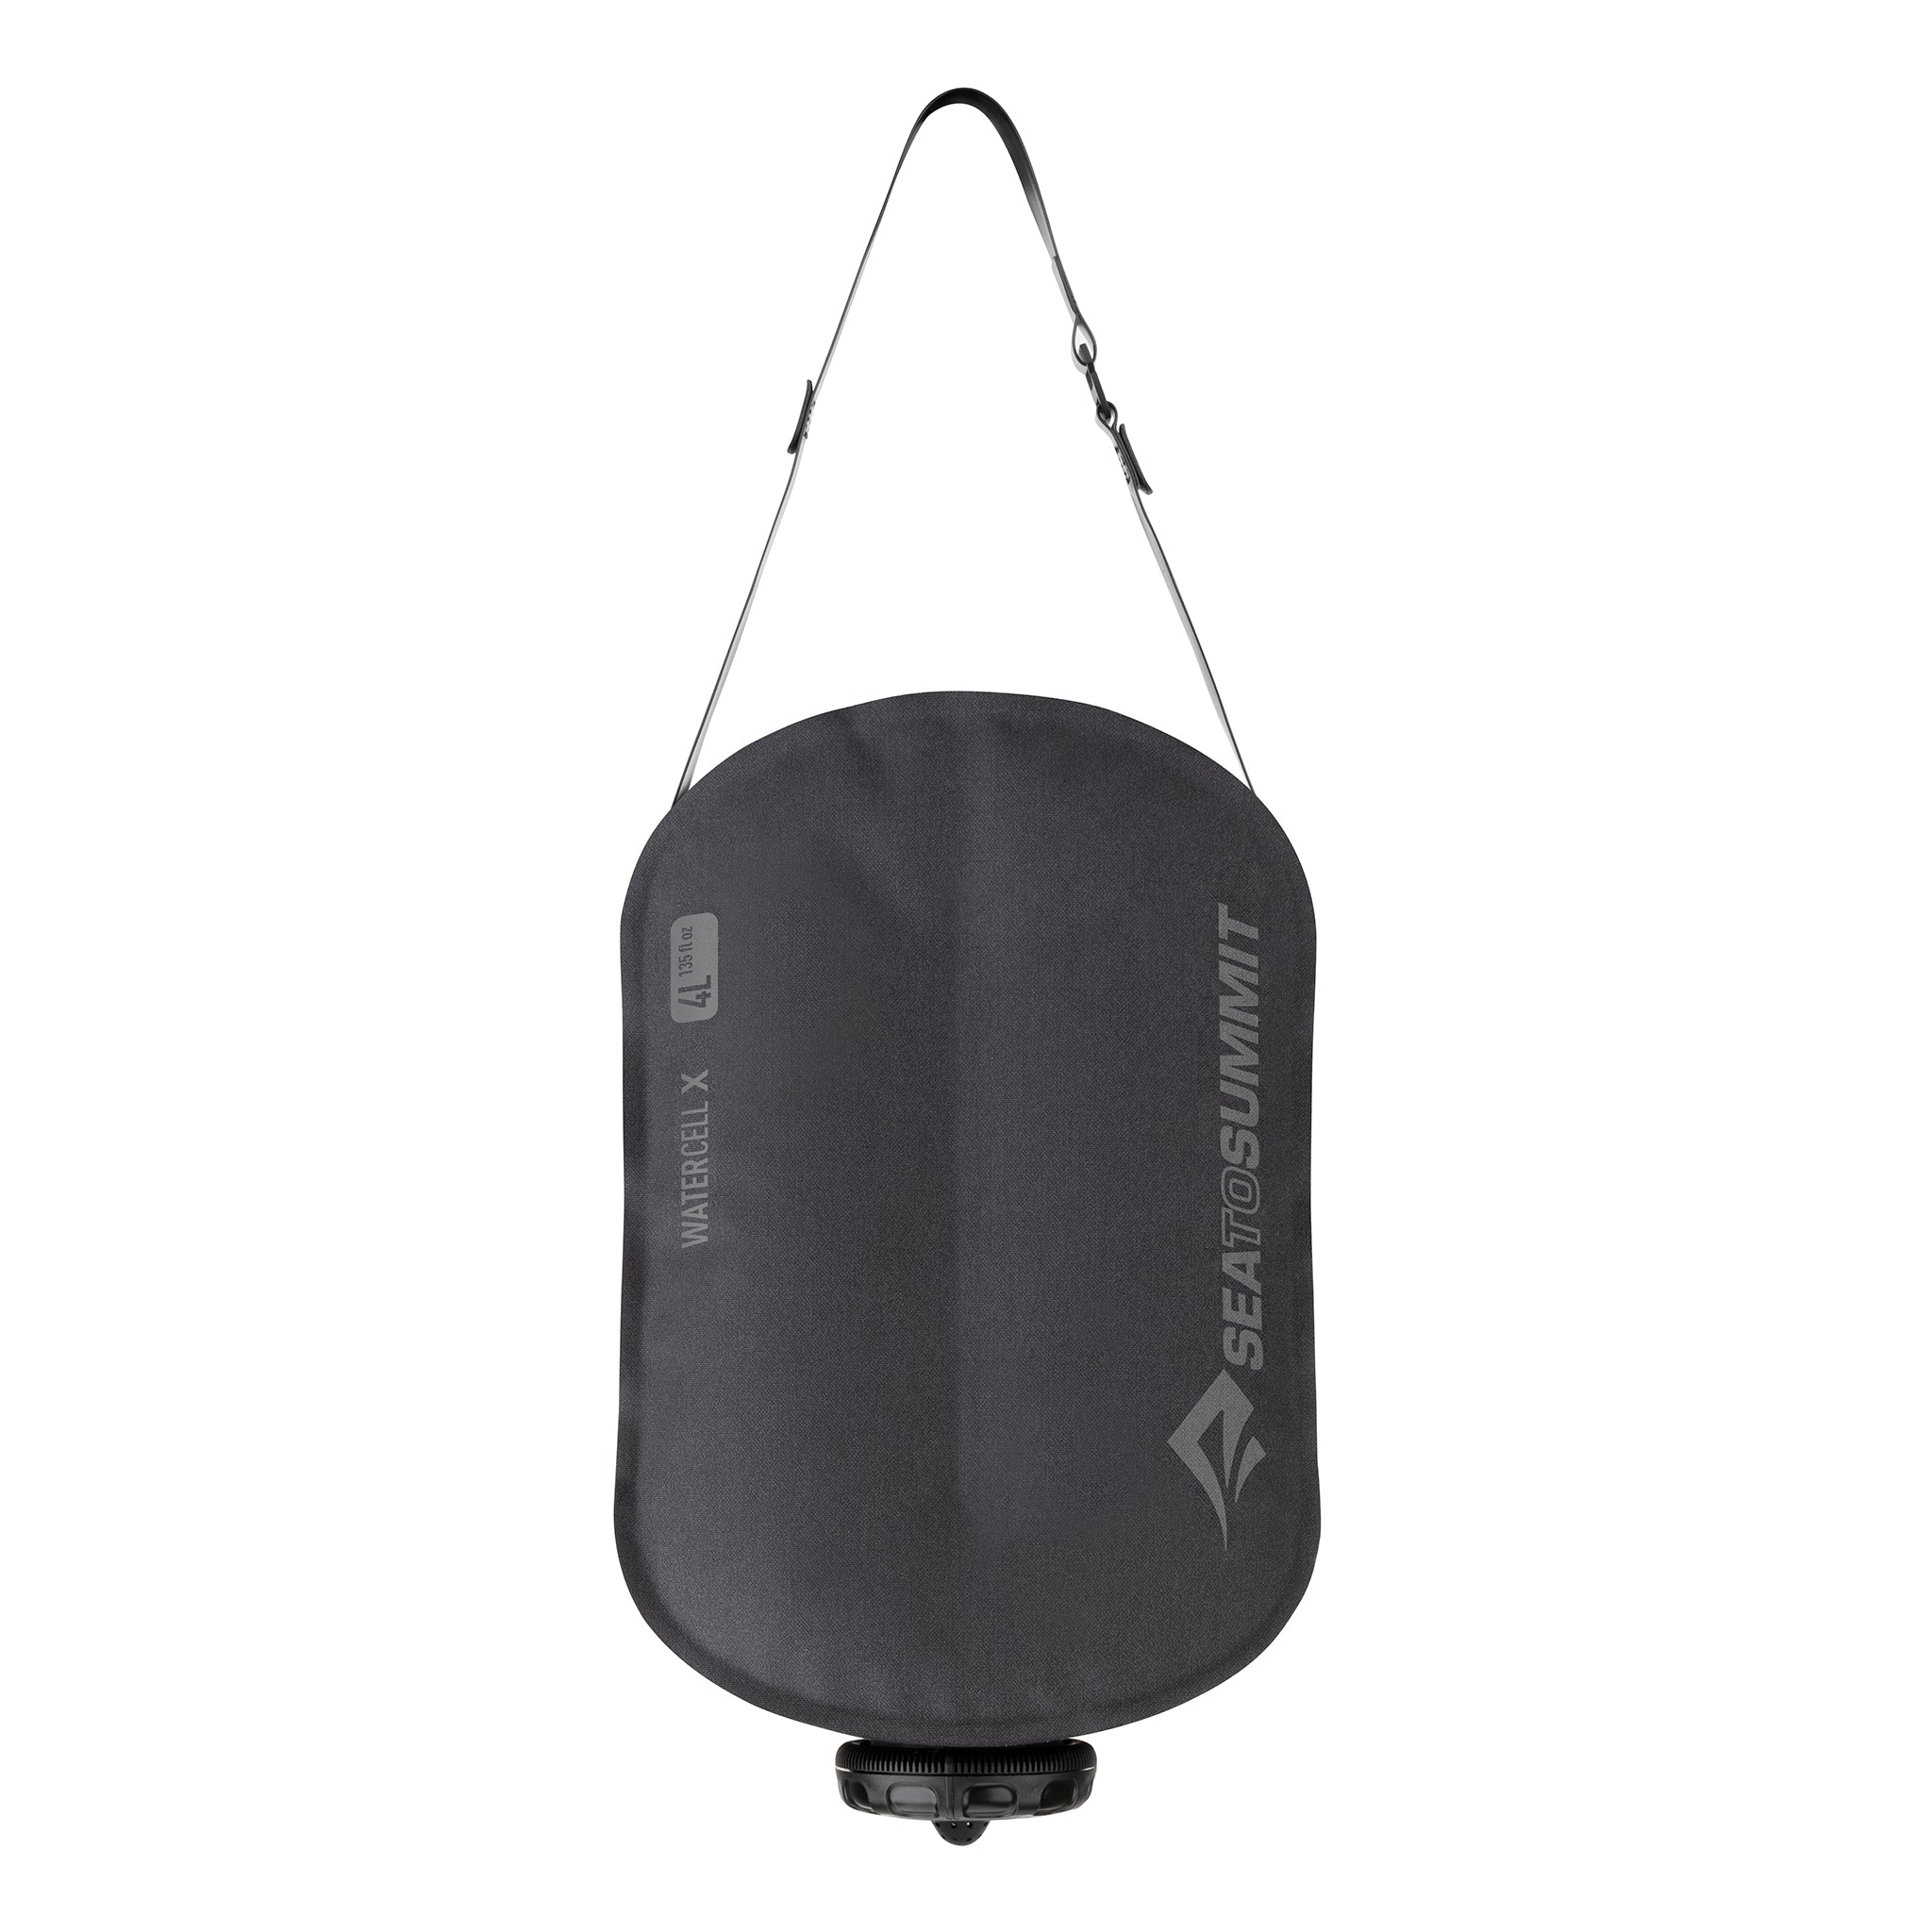 Warter cell X _ durable reservoir water bag _ hanging strap